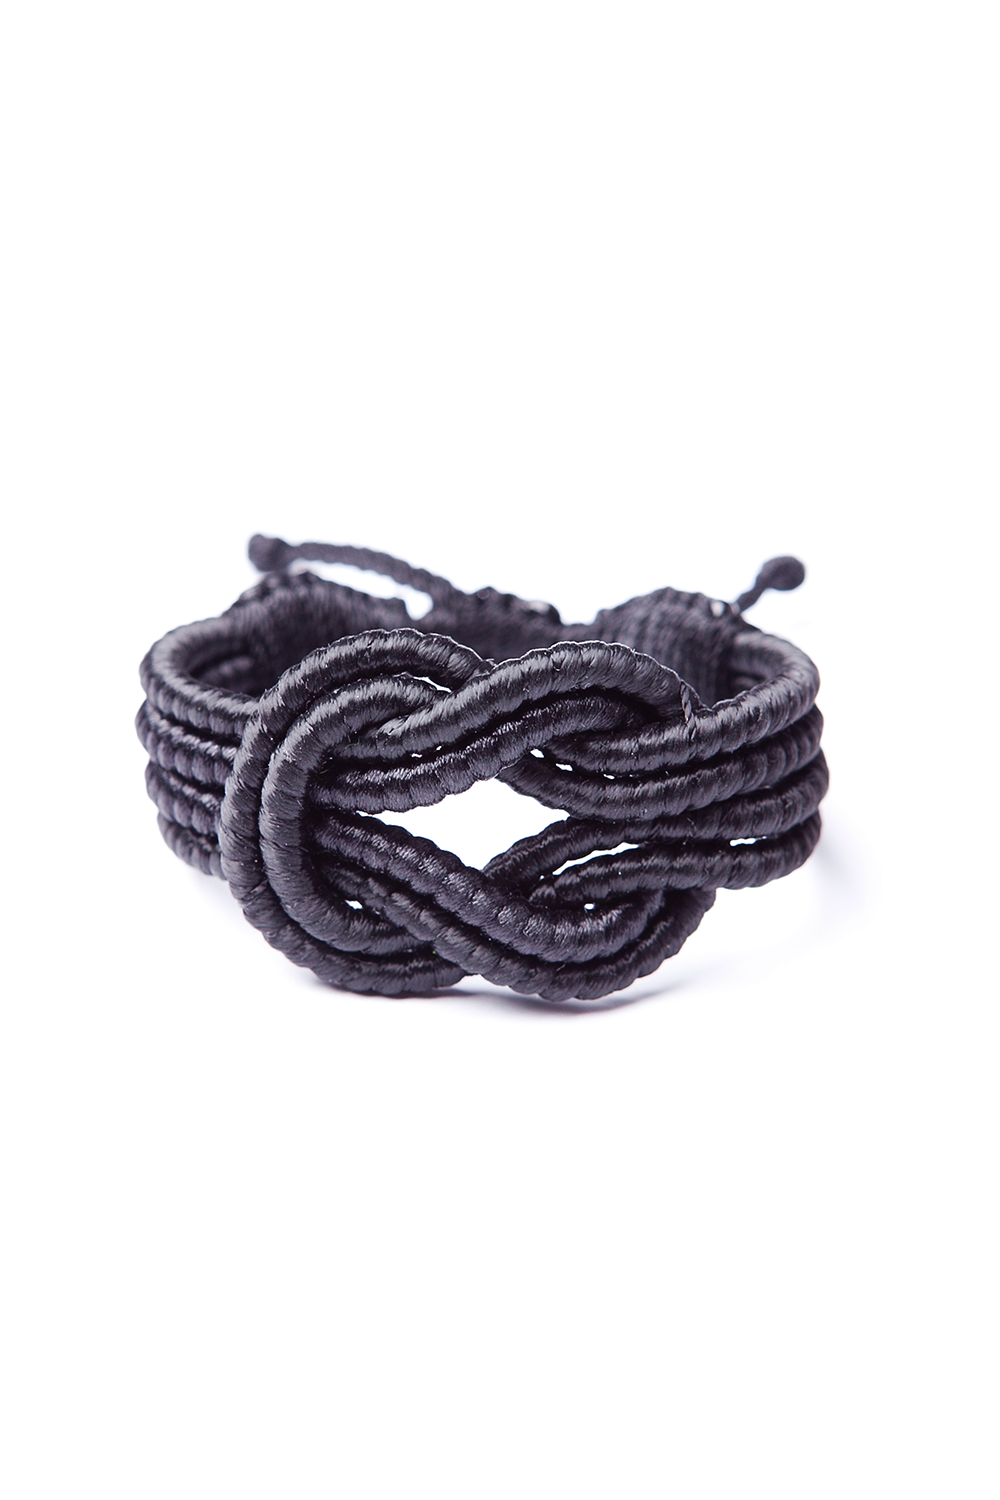 Open Knot Bracelet in Black